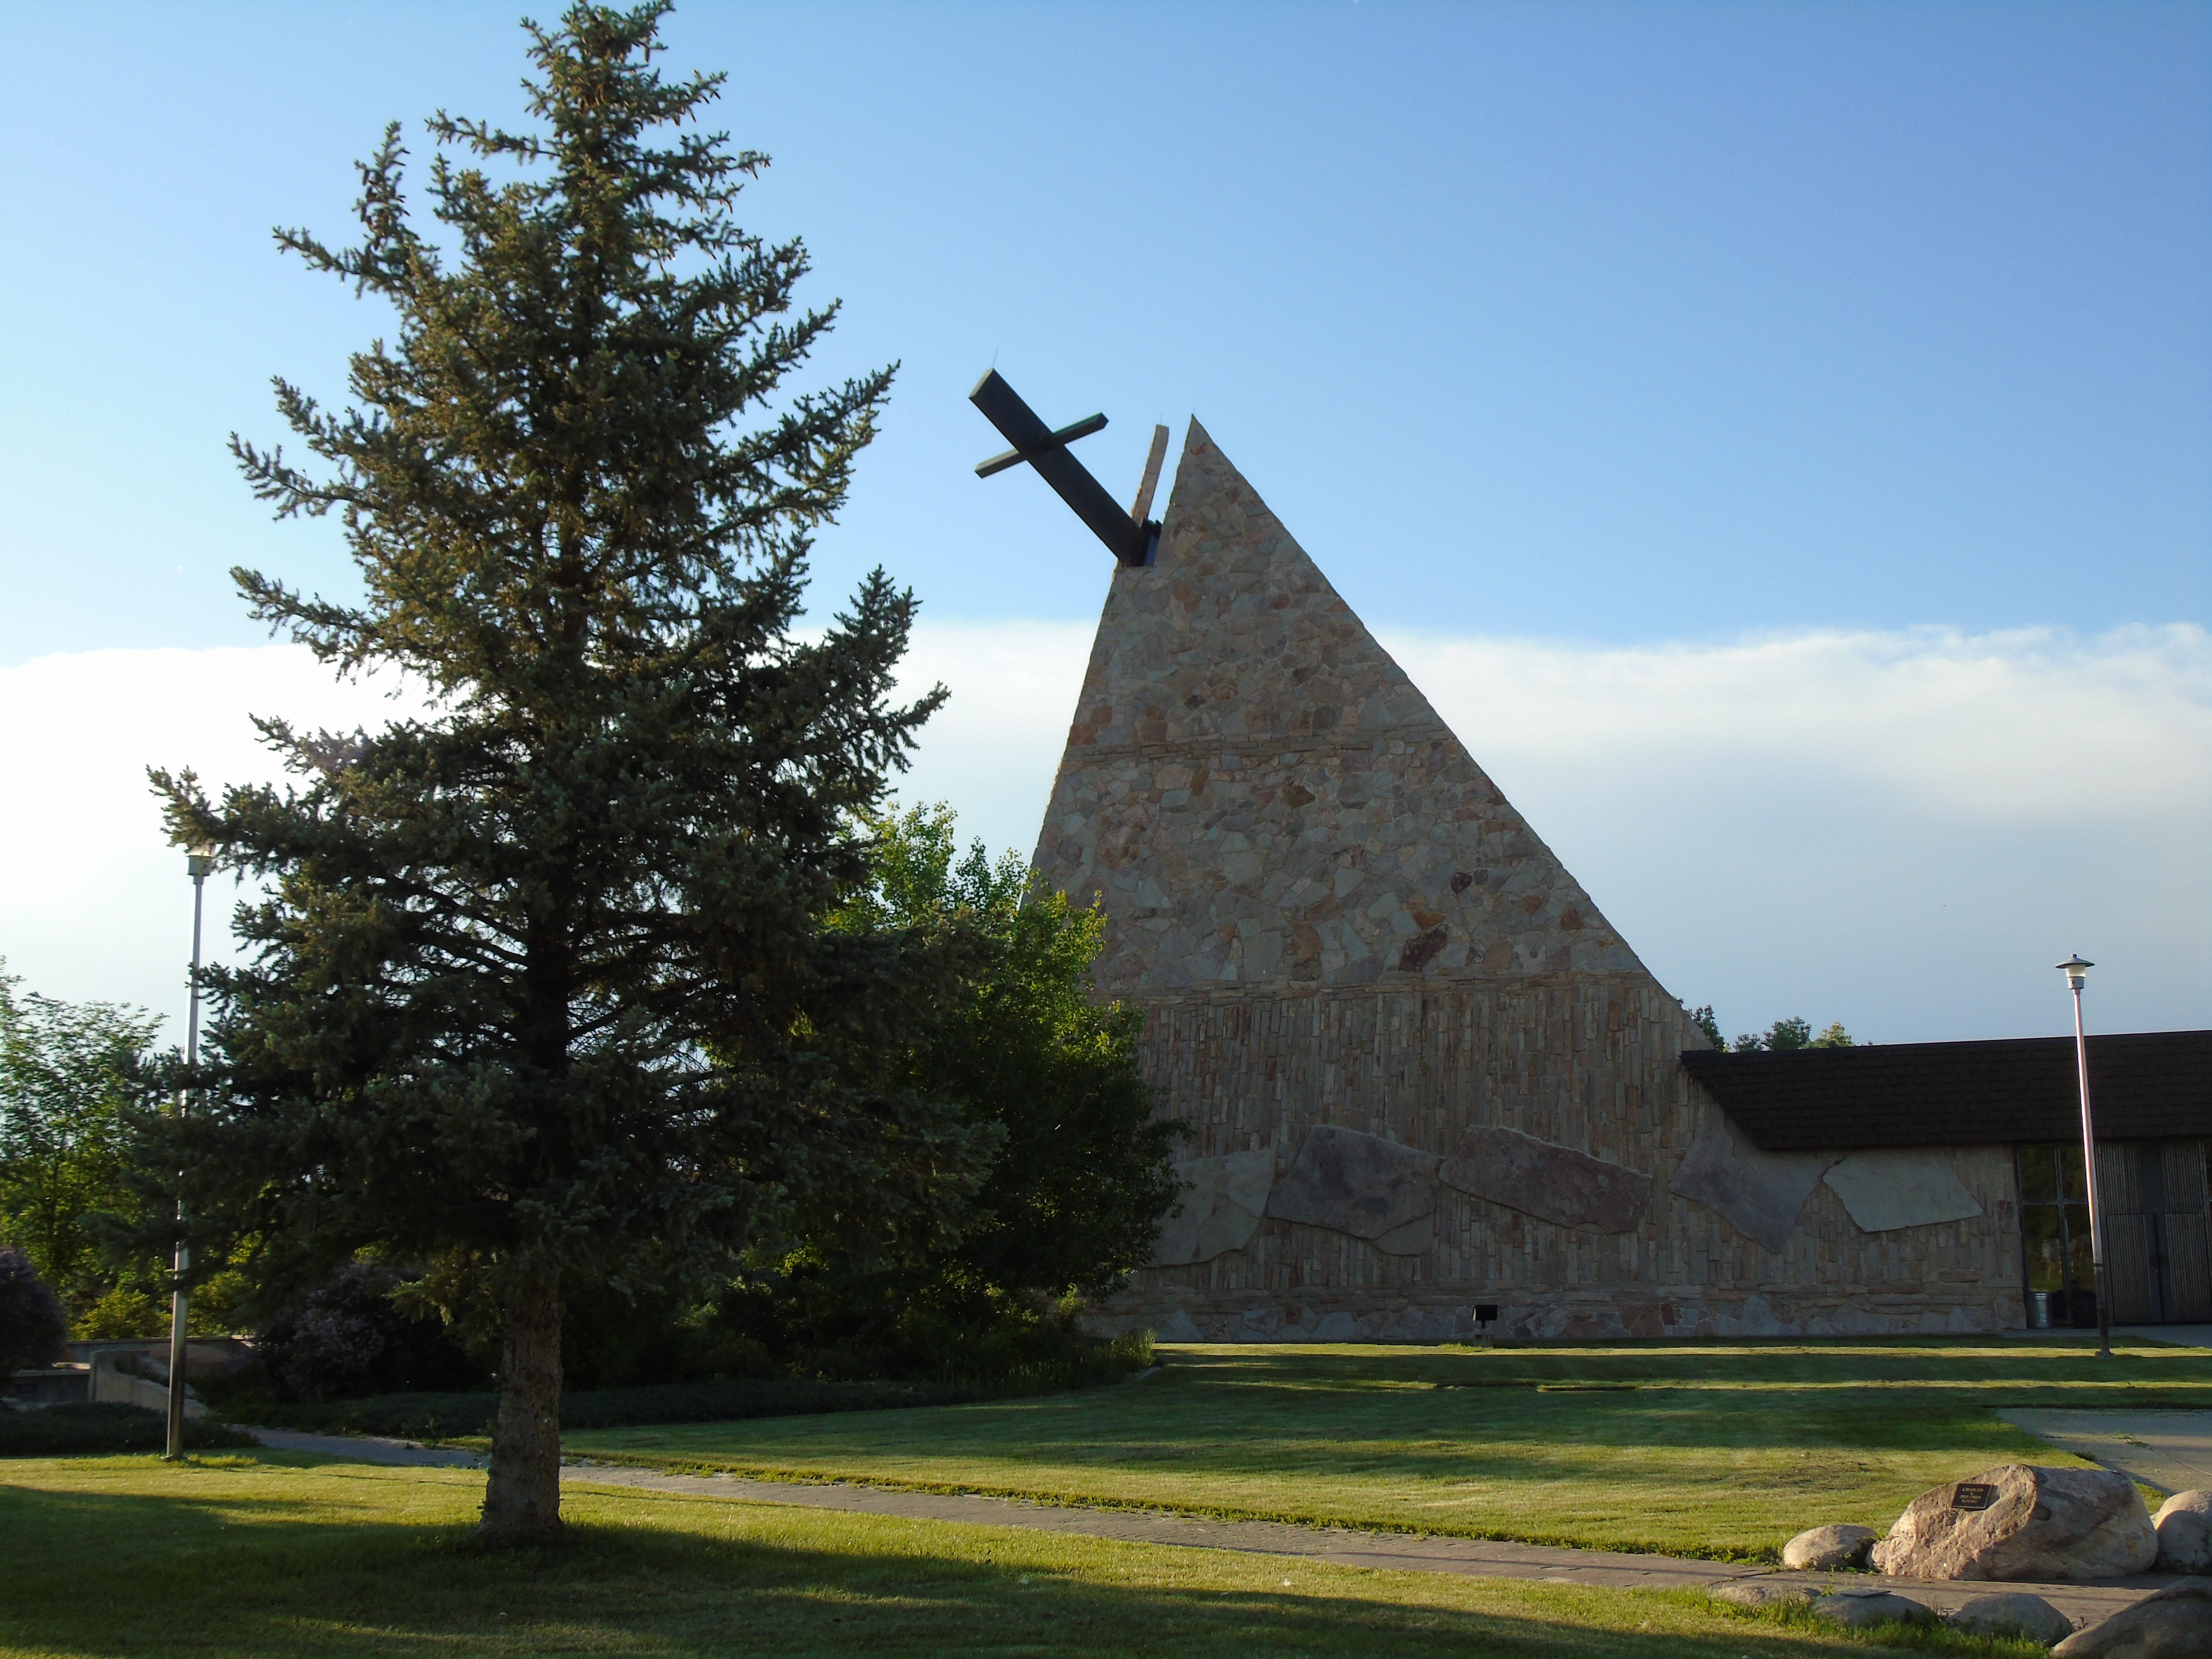 The St. Labre Indian School in Ashland on the Northern Cheyenne Indian Reservation is worth a detour when traveling the Warrior Trail.